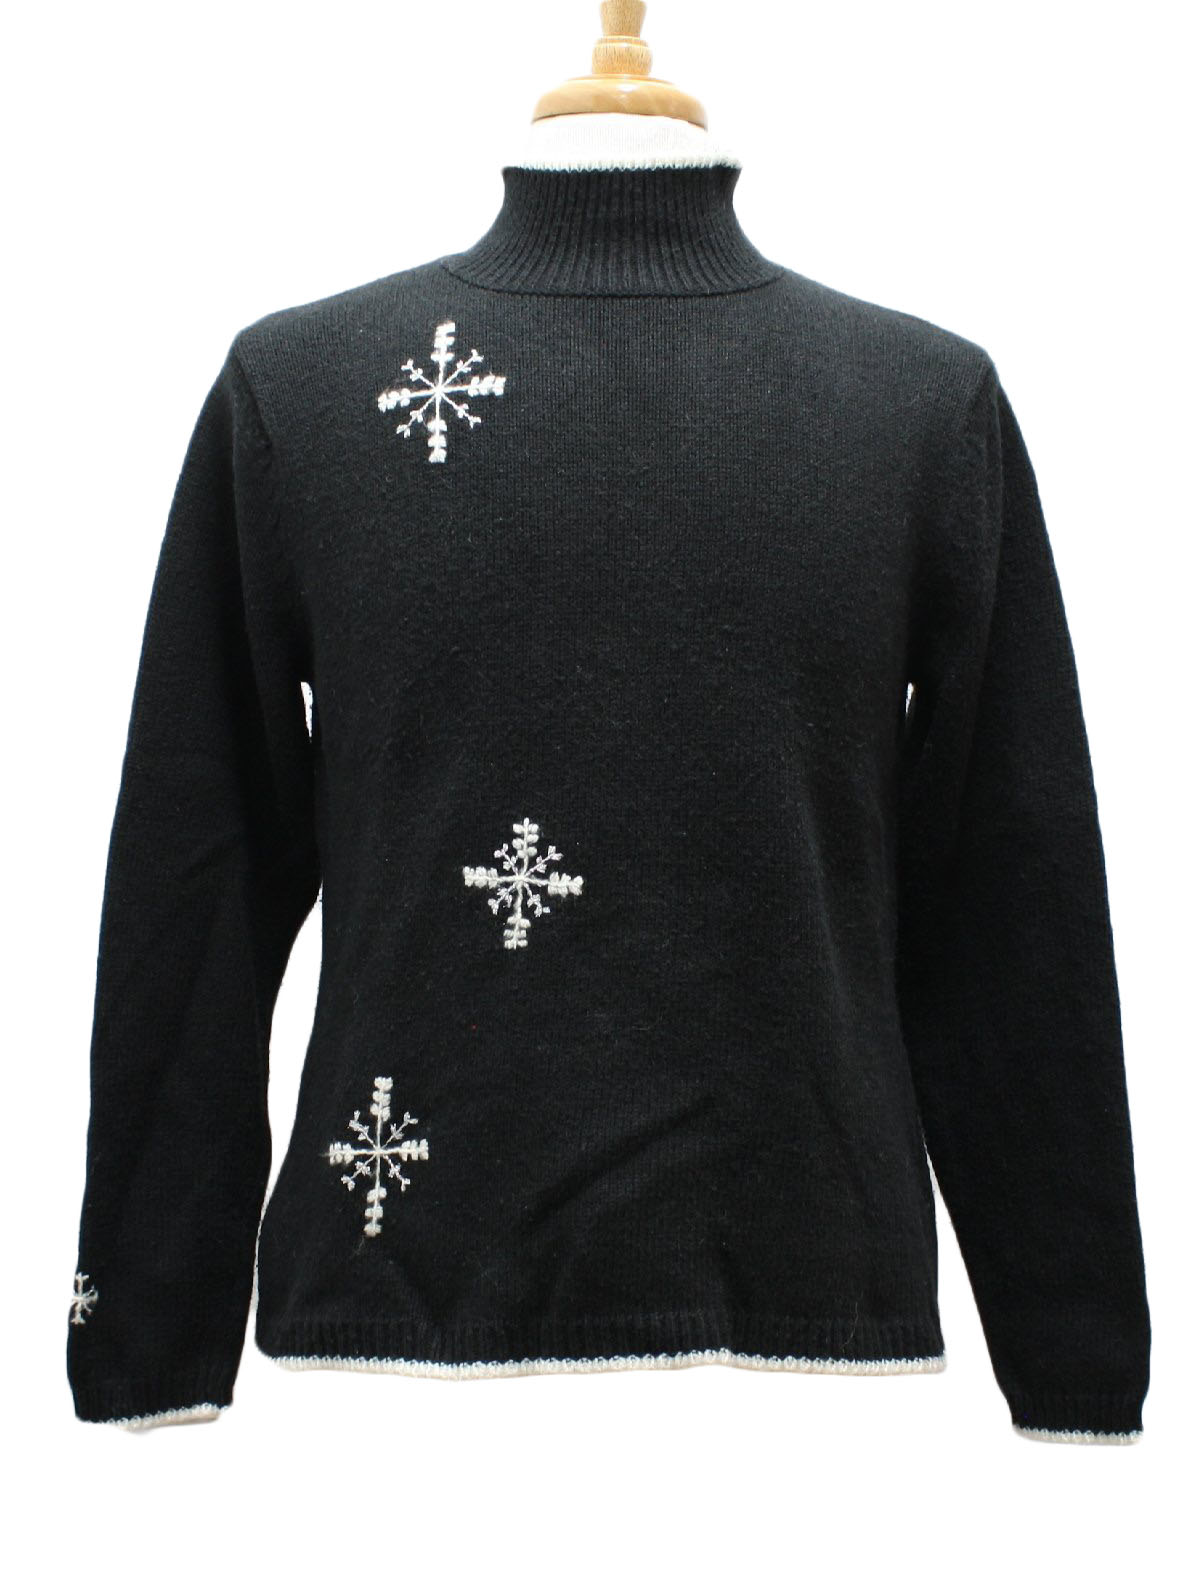 womens ugly christmas sweater dockers womens black and white background acrylic ramie blend pullover longsleeve ugly christmas sweater turtleneck collar - Black Christmas Sweater